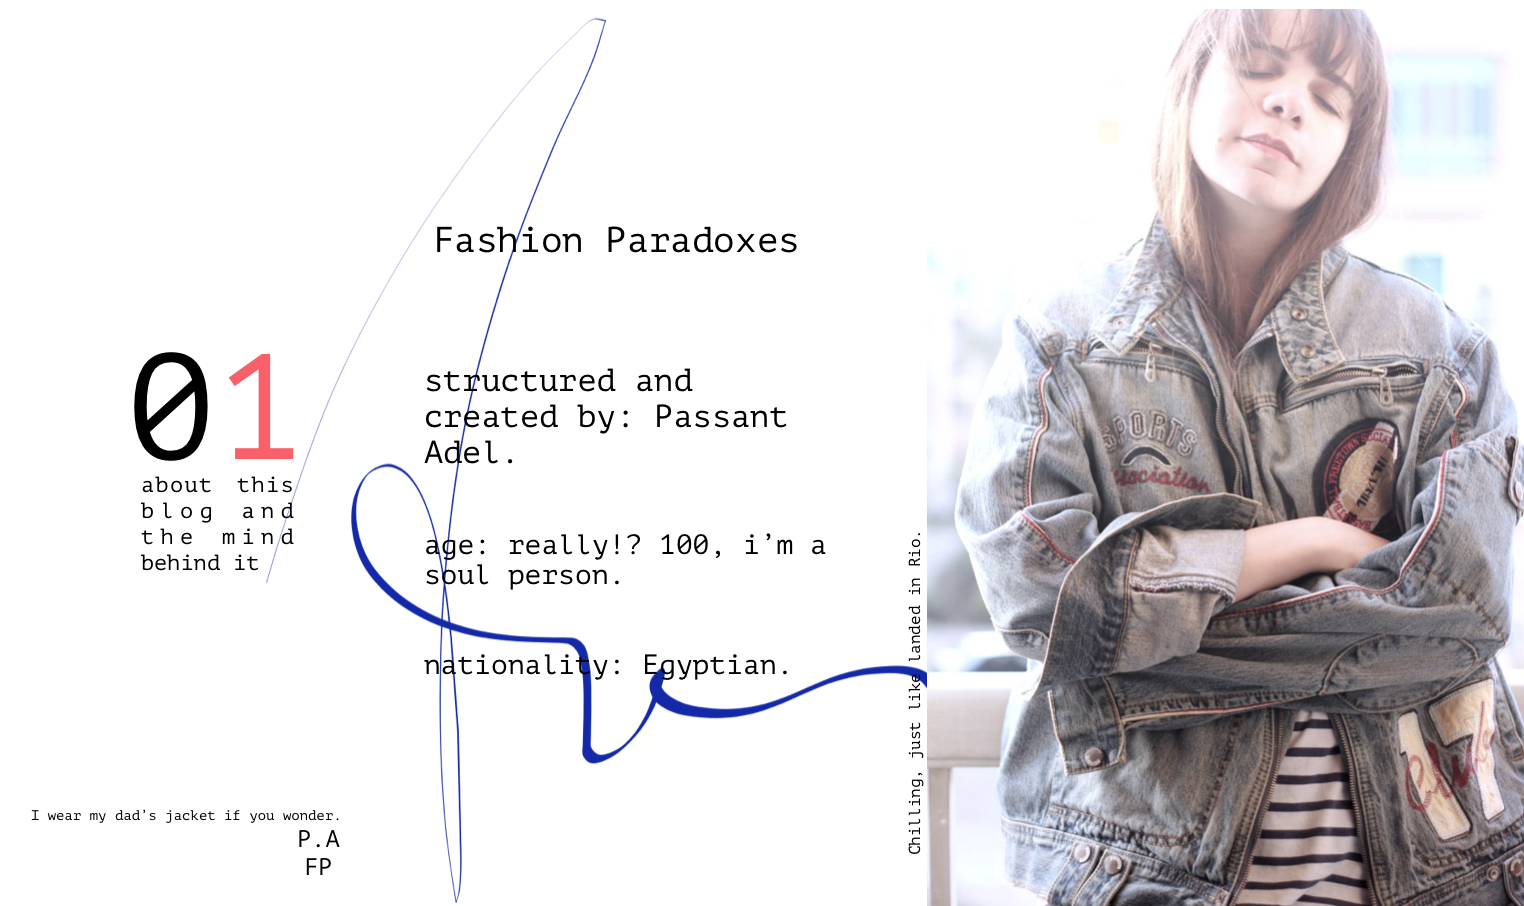 about fashion paradoxes